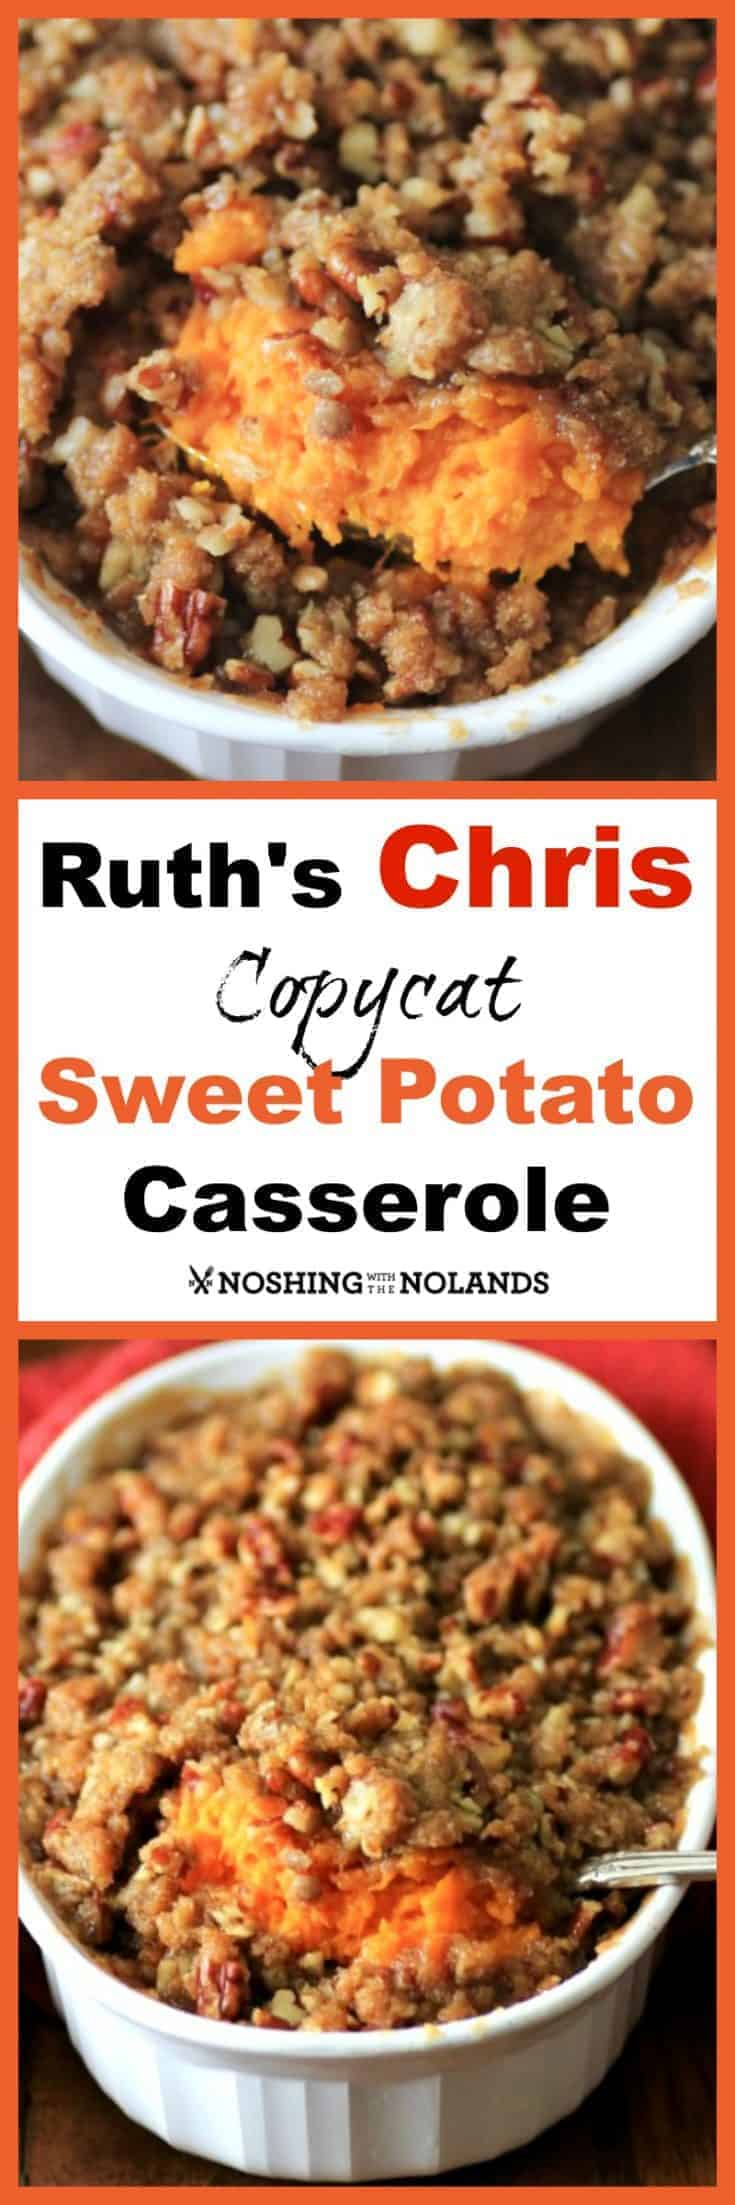 Ruth's Chris Copycat Sweet Potato Casserole is an awesome side dish that eveyone will love. It is easy and a great make ahead too. #holiday #sidedish #makeahead